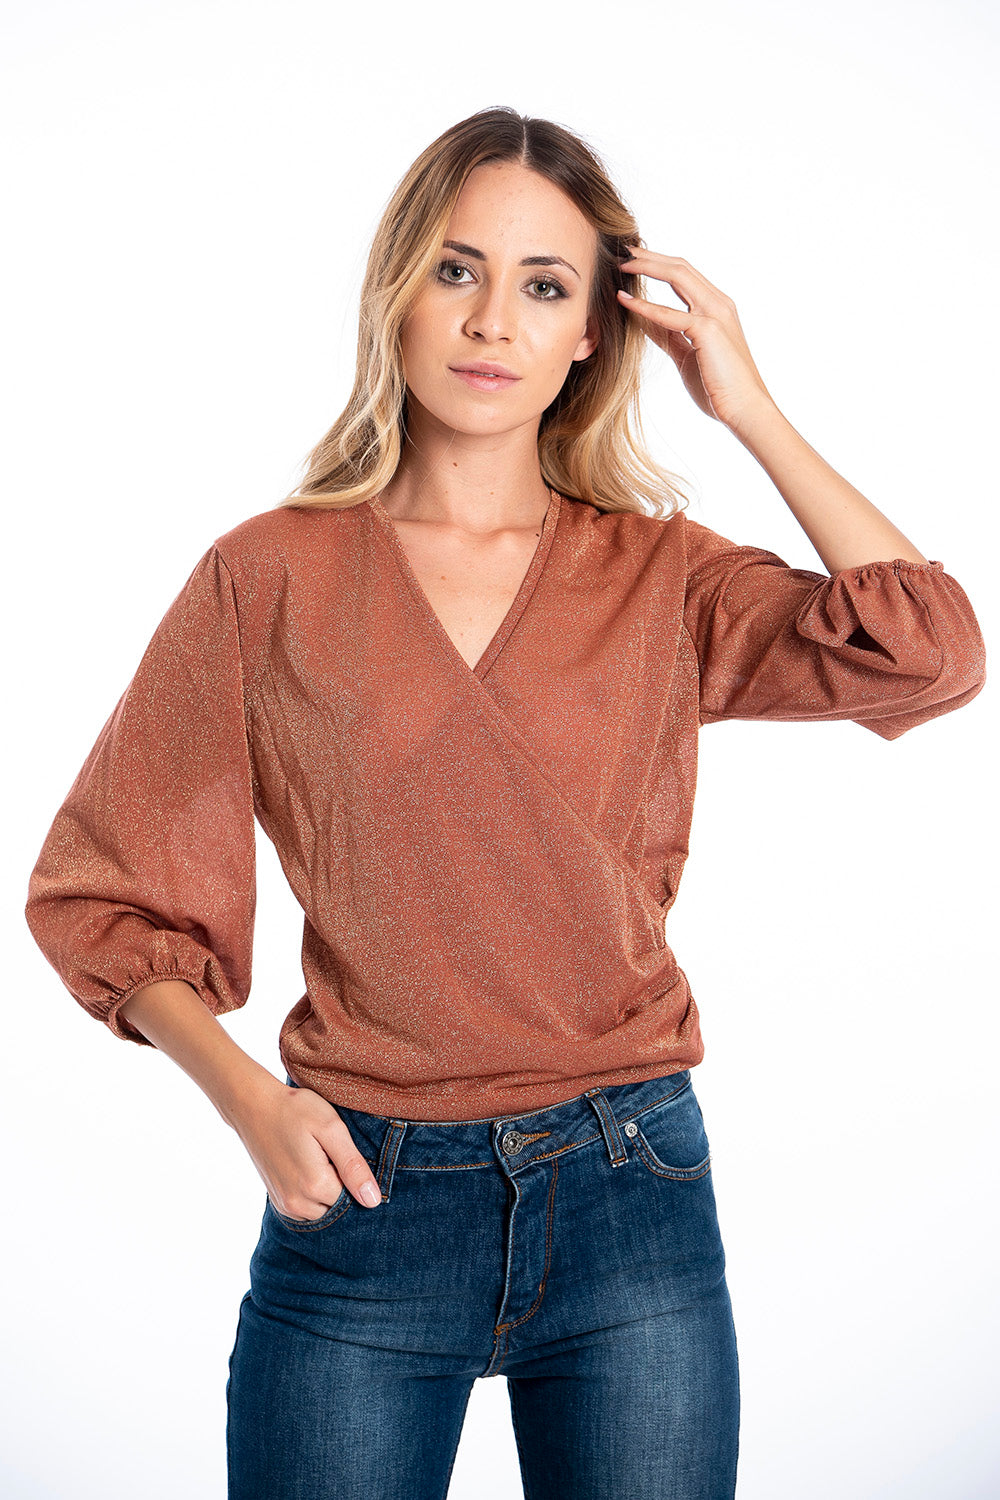 NúNu wrap front top with baloon sleeves